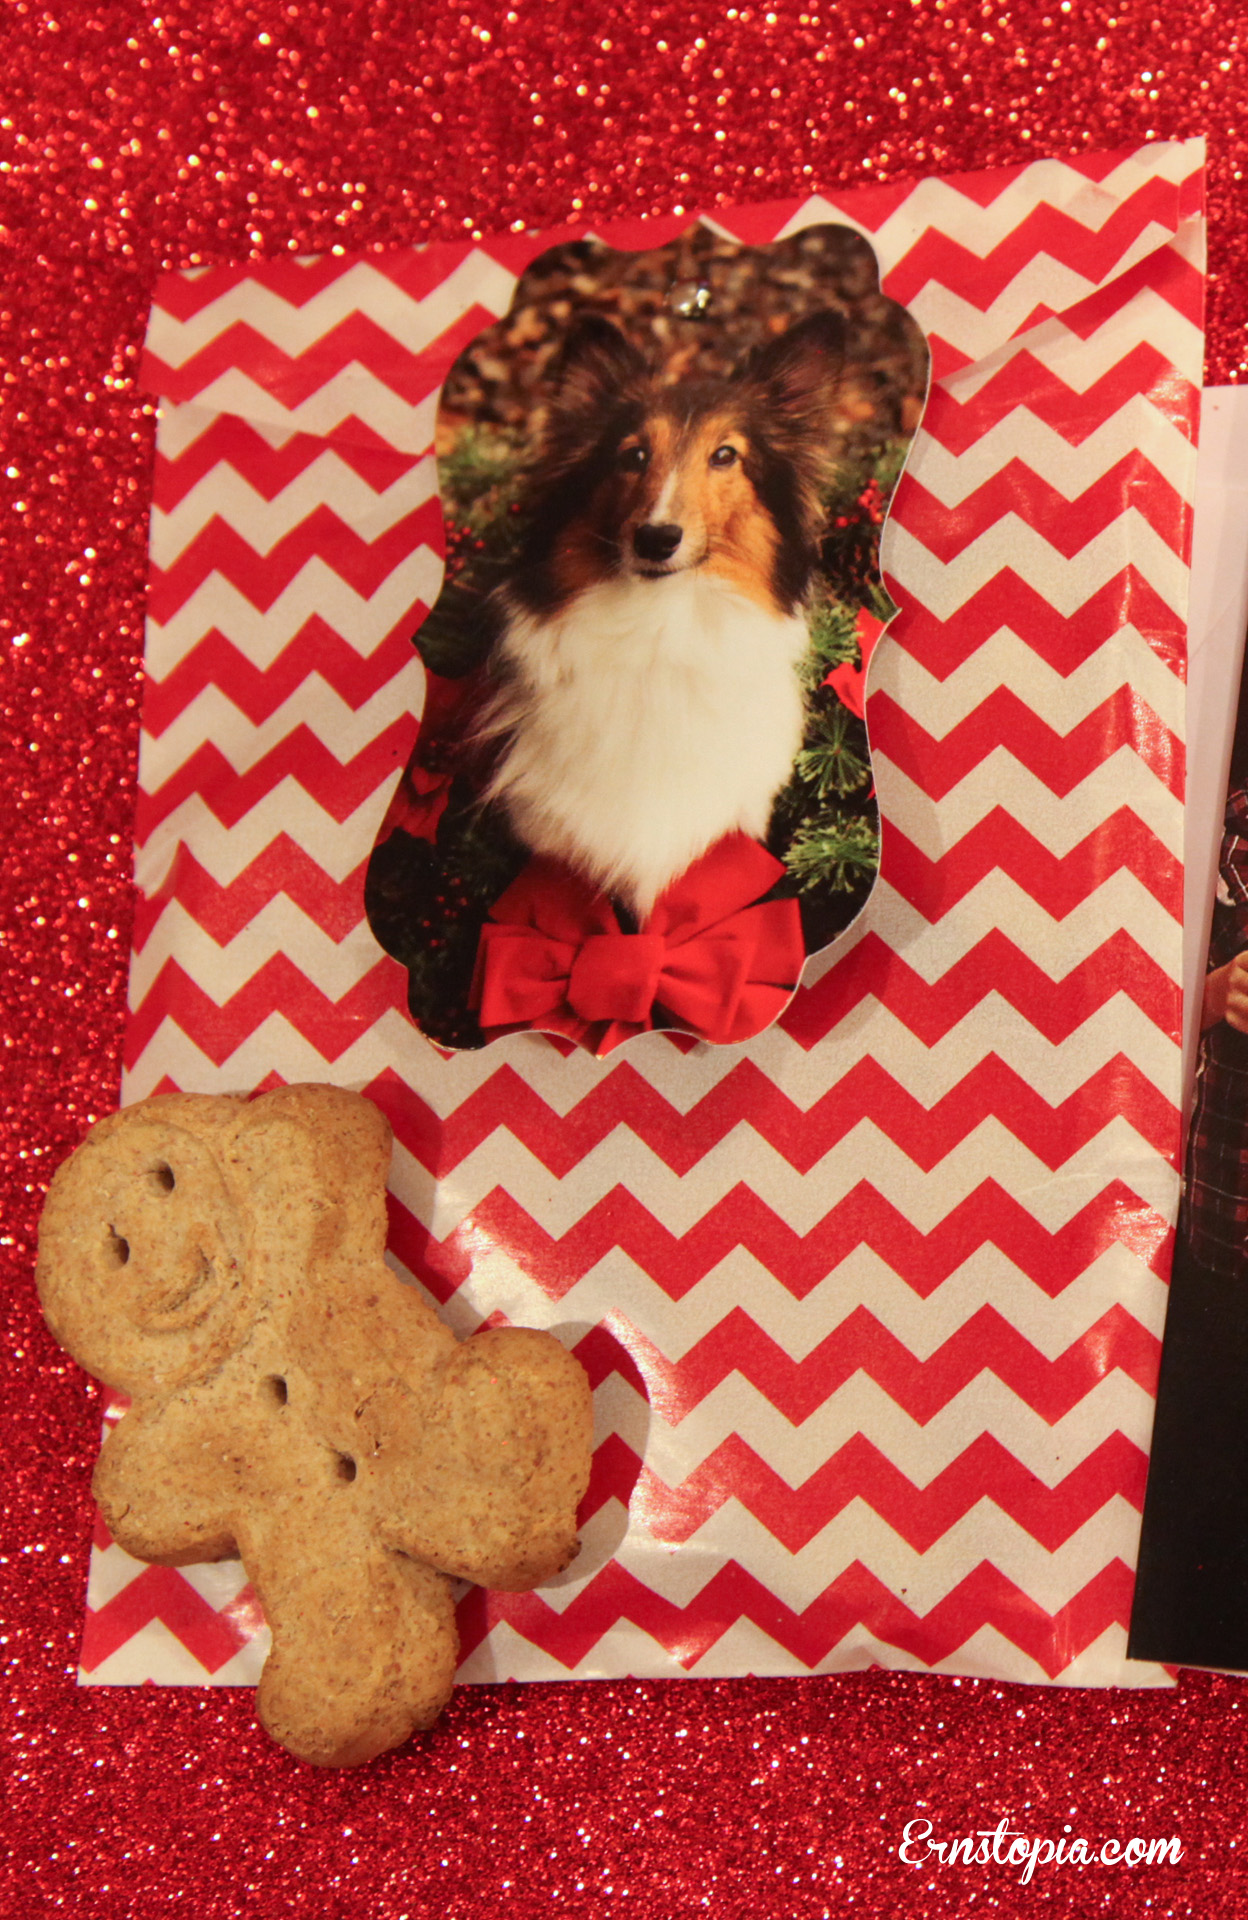 ginger gift 12-25-9014 copy